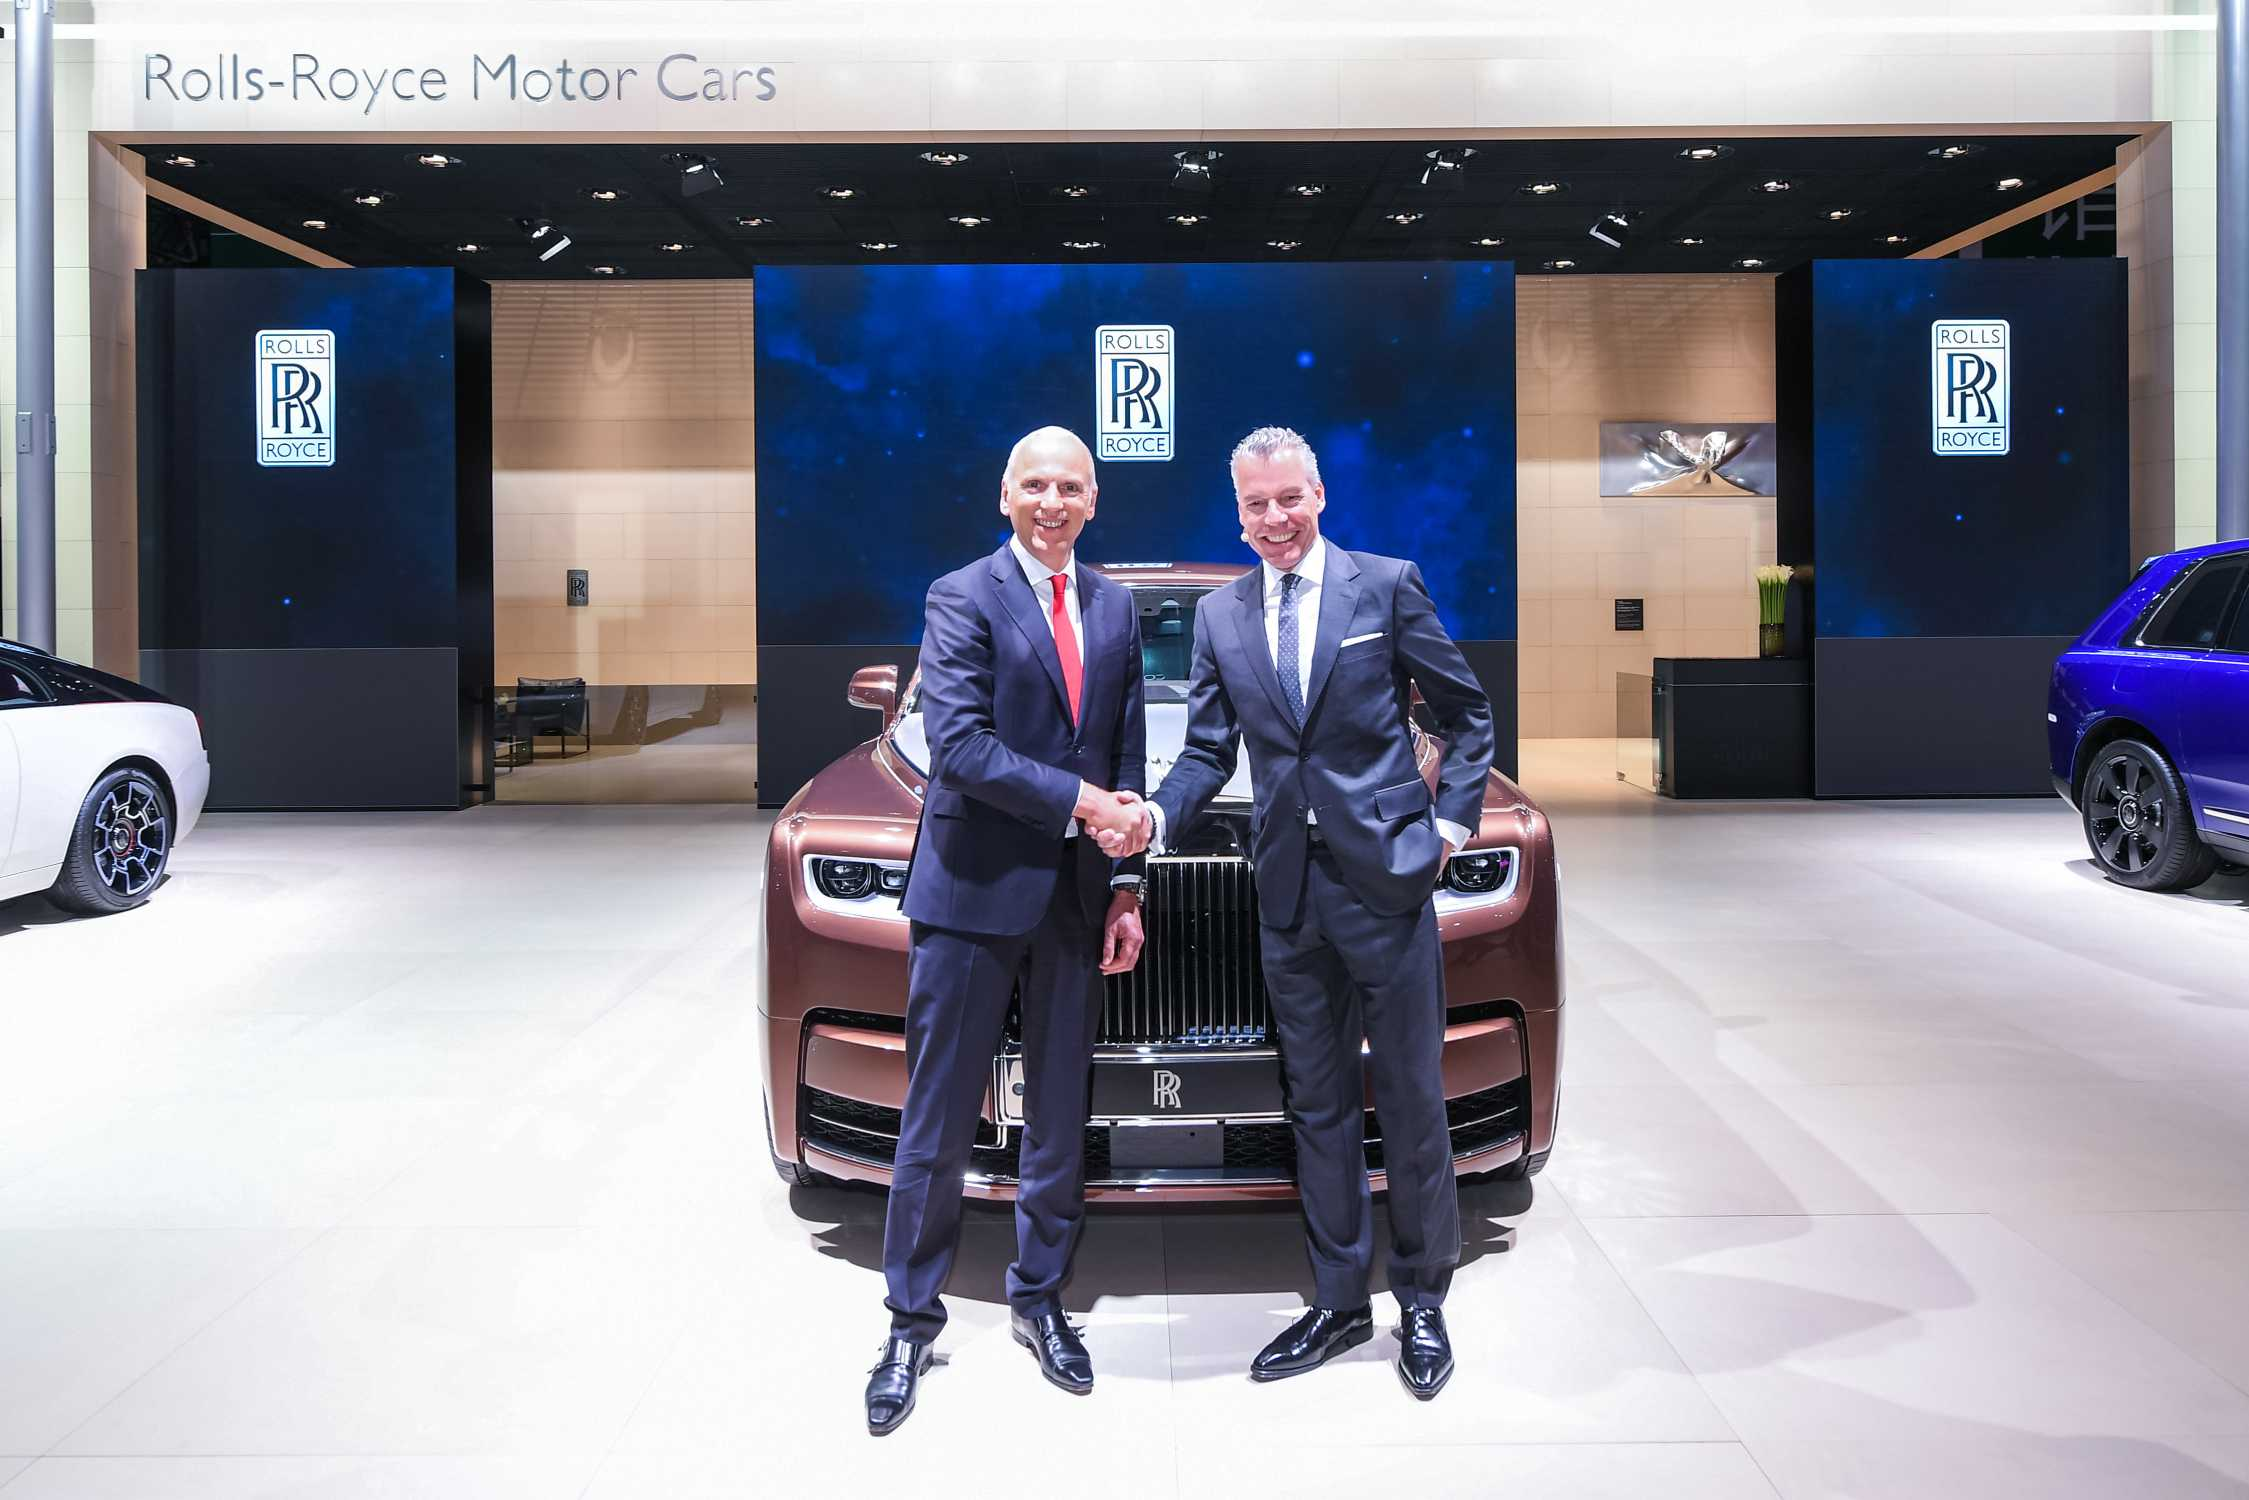 https://mediapool.bmwgroup.com/cache/P9/201904/P90345587/P90345587-rolls-royce-celebrates-success-in-china-at-2019-shanghai-motor-show-2249px.jpg